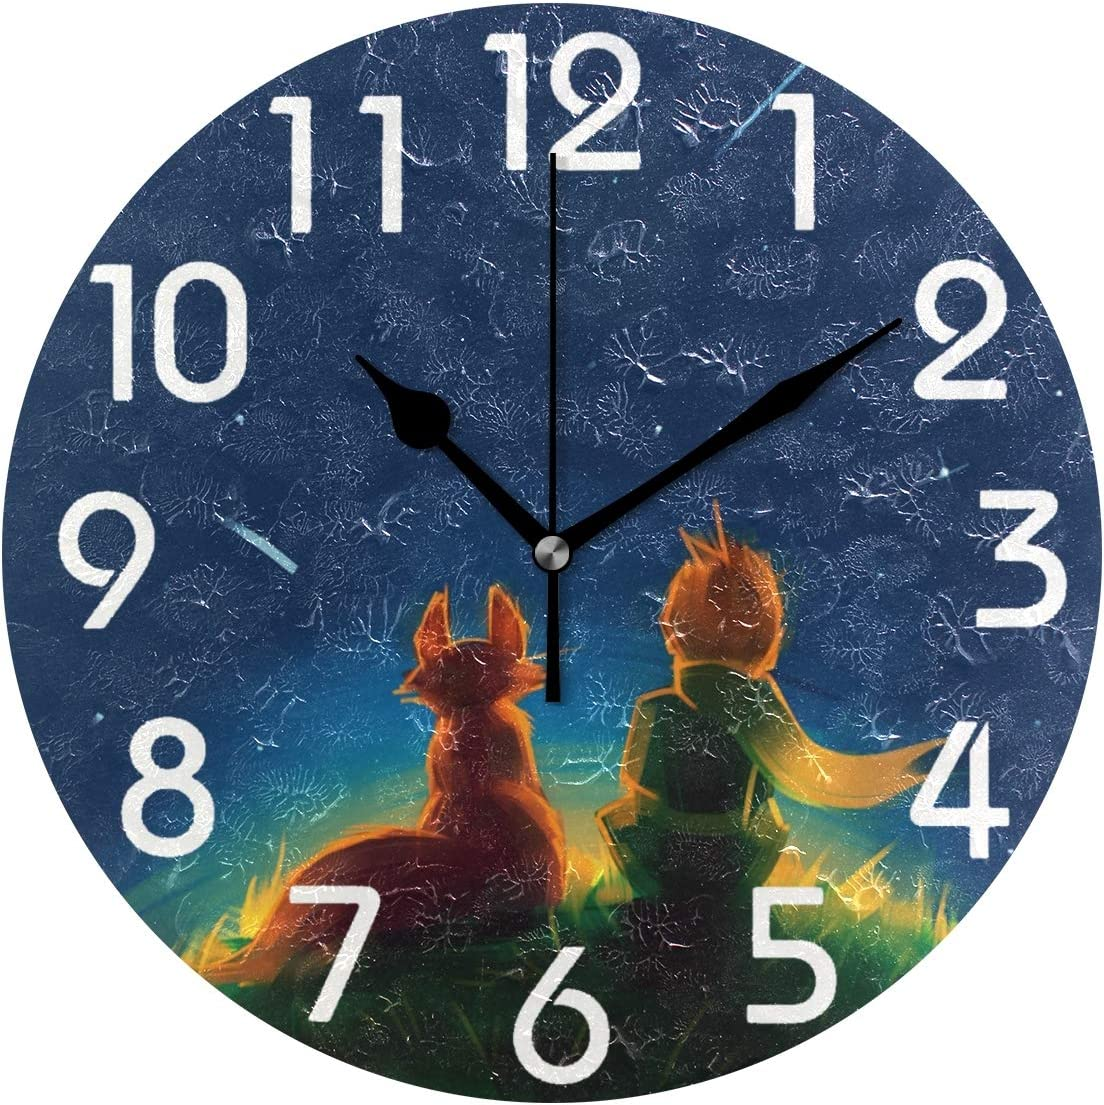 Naanle Little Prince and Fox Sitting on Grass Under Starry Sky Print Round Wall Clock Decorative, 9.5 Inch Battery Operated Quartz Analog Quiet Desk Clock for Home,Office,School